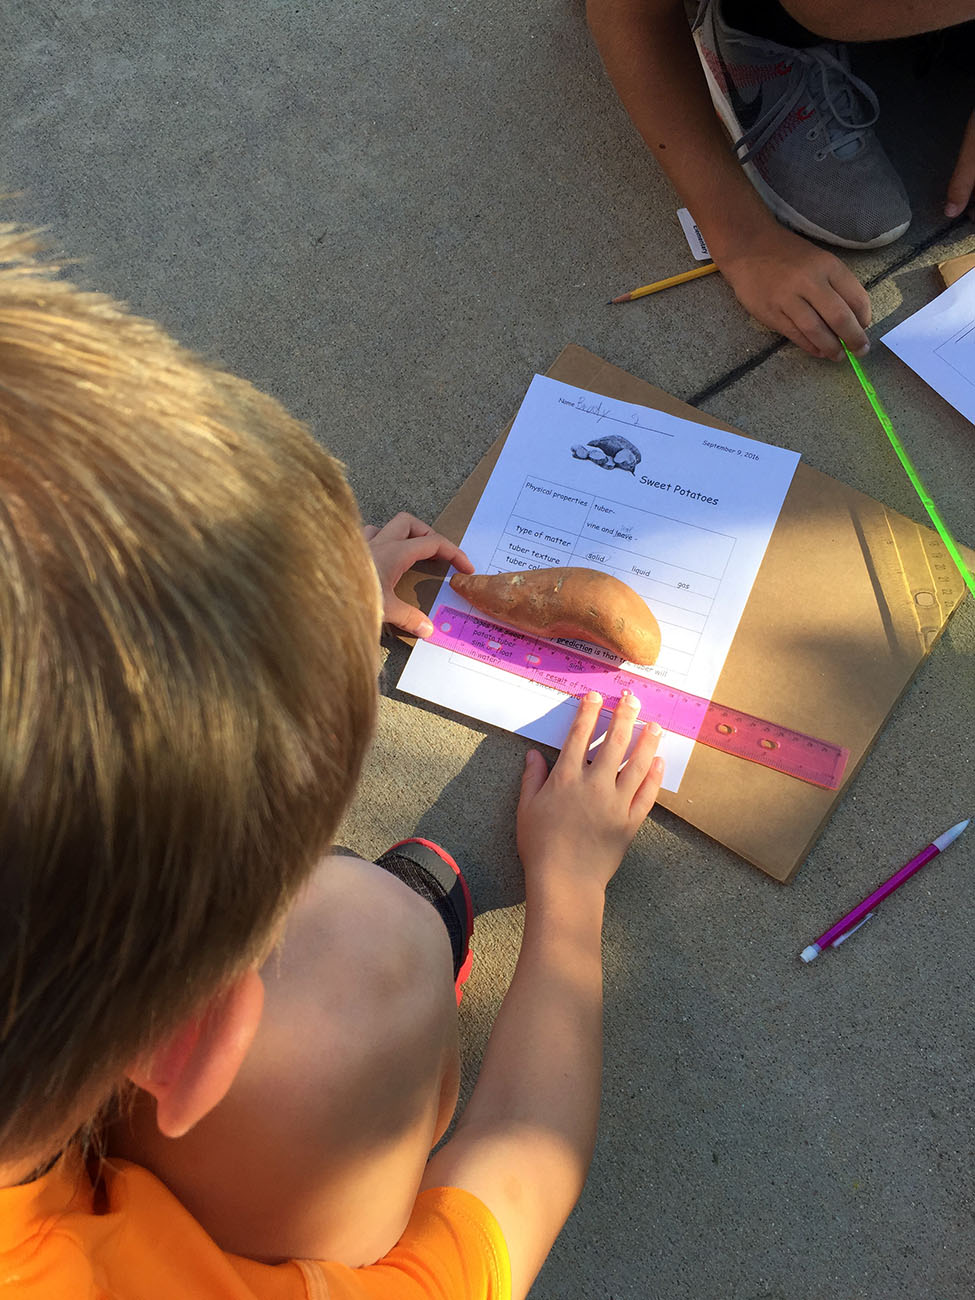 At Warner Elementary, Students measuring sweet potatoes and recording physical properties